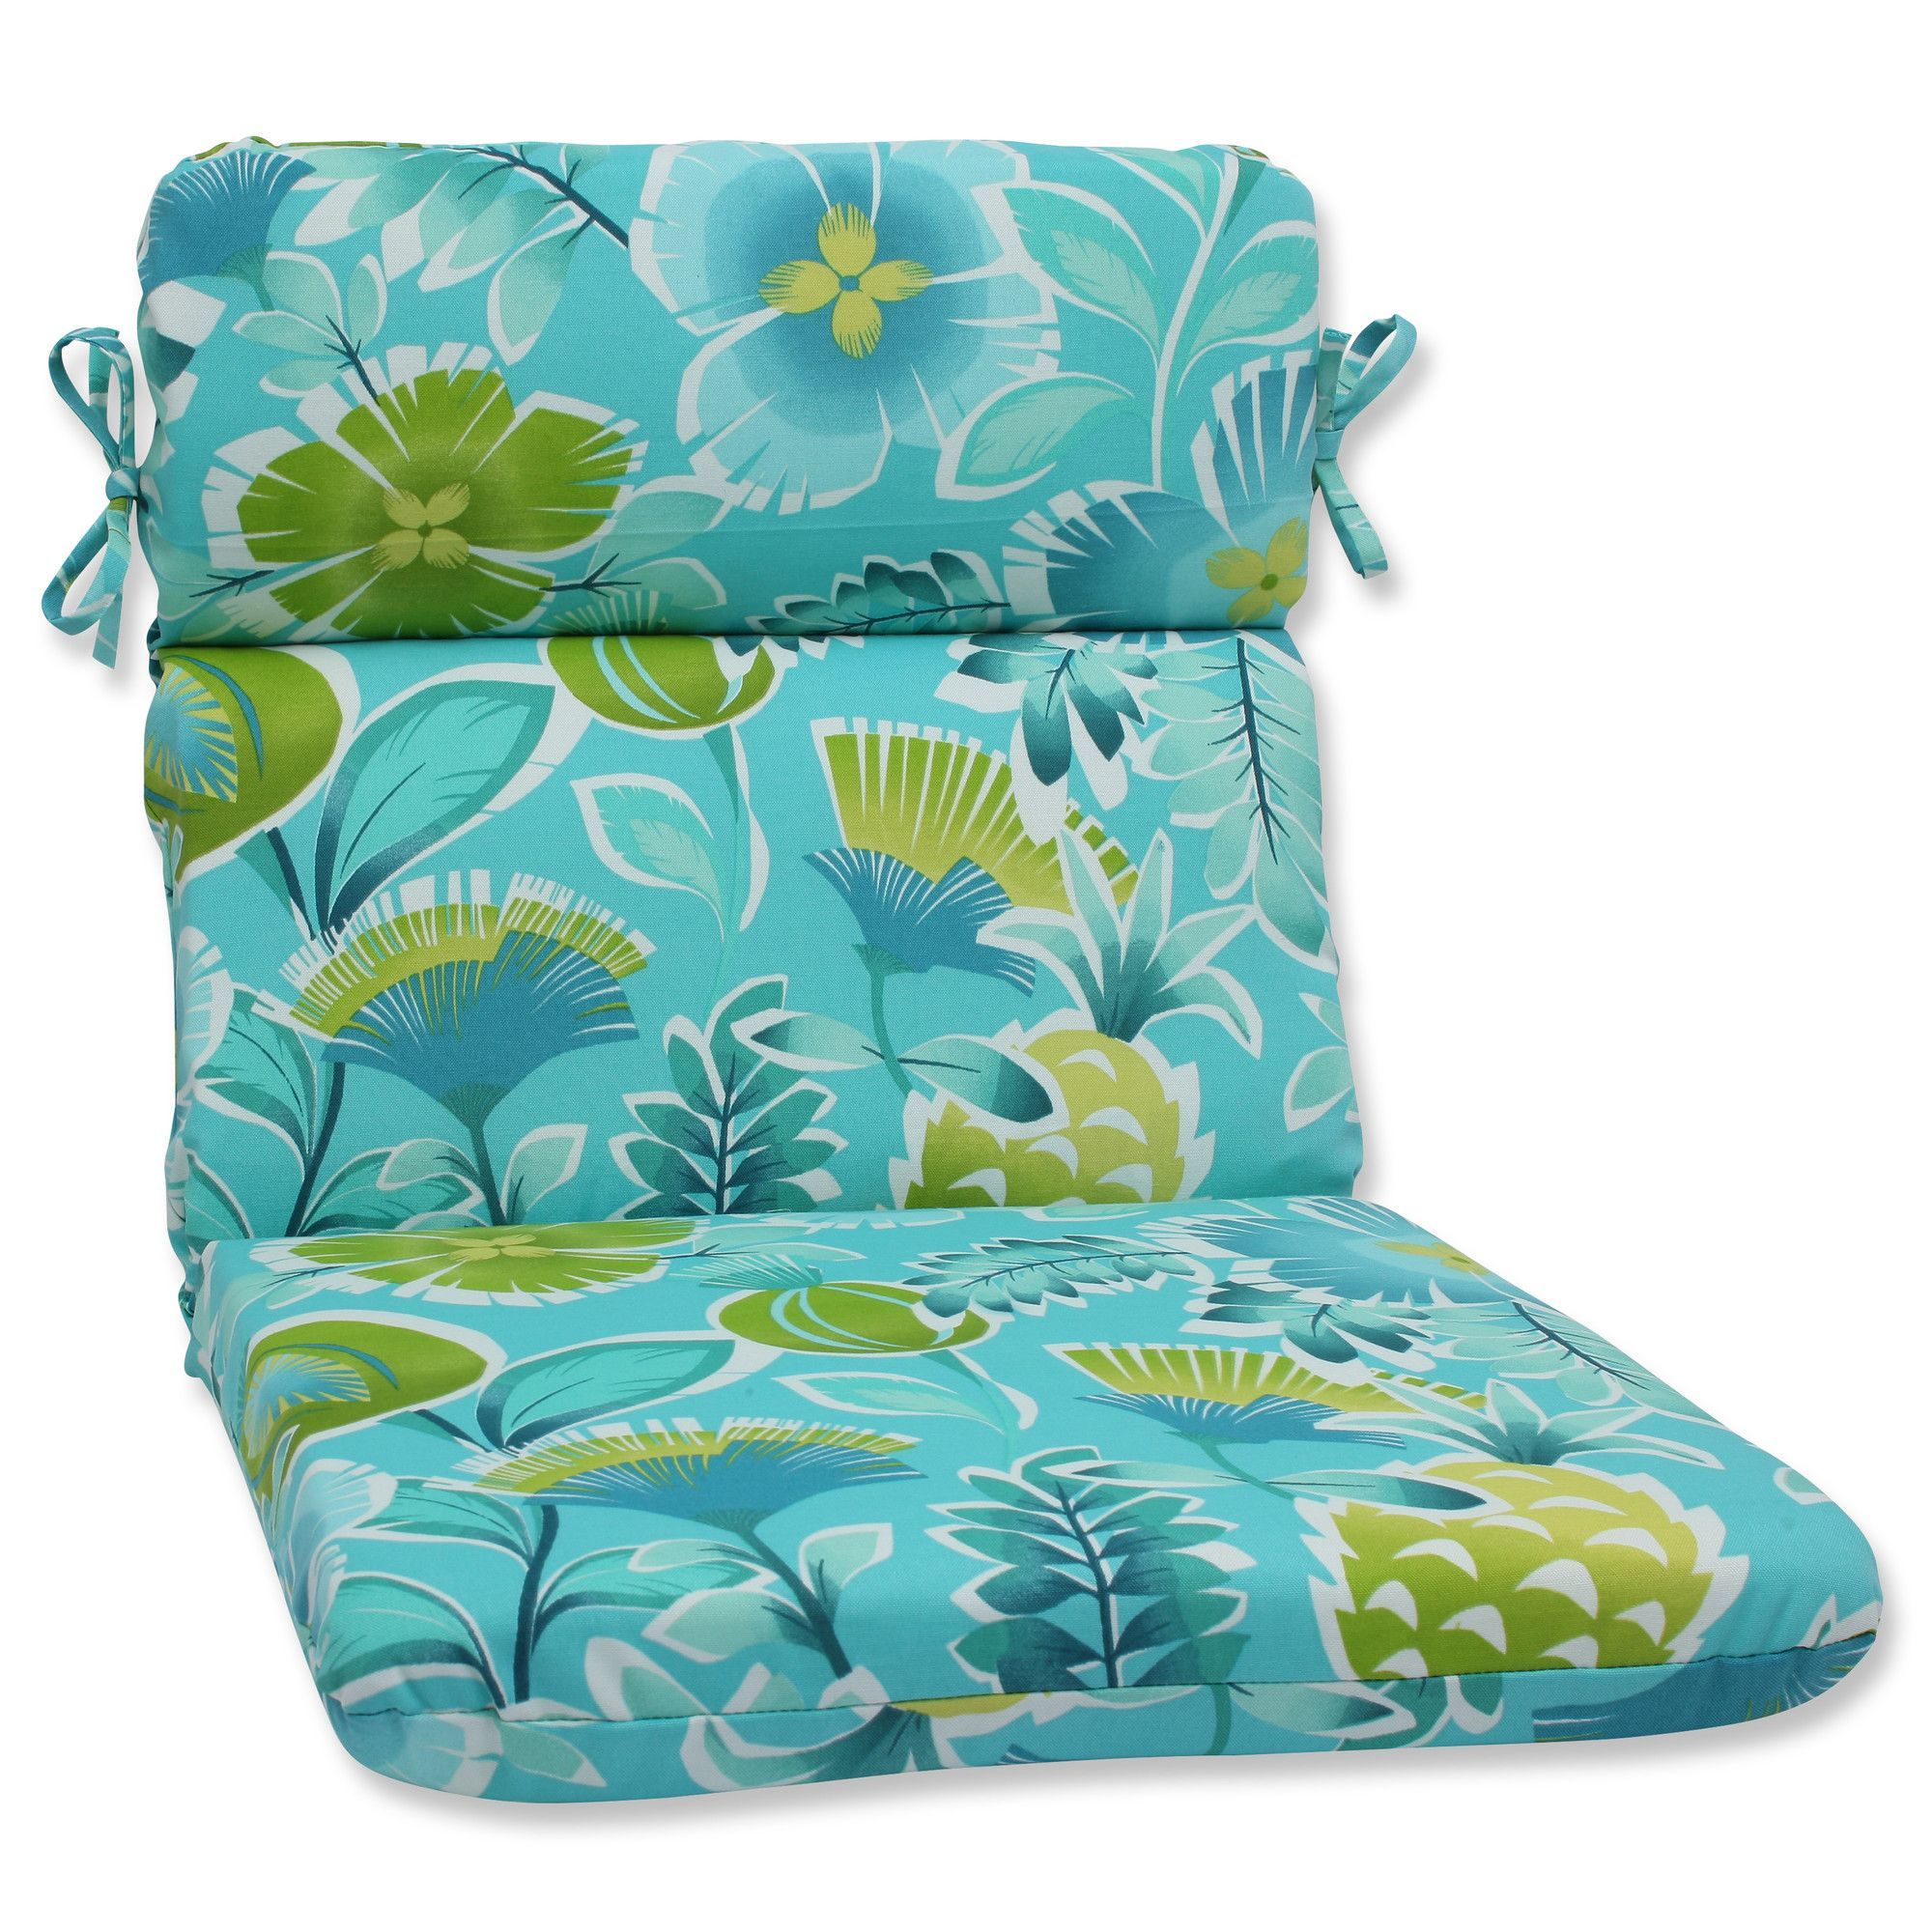 Calypso Outdoor Lounge Chair Cushion Products